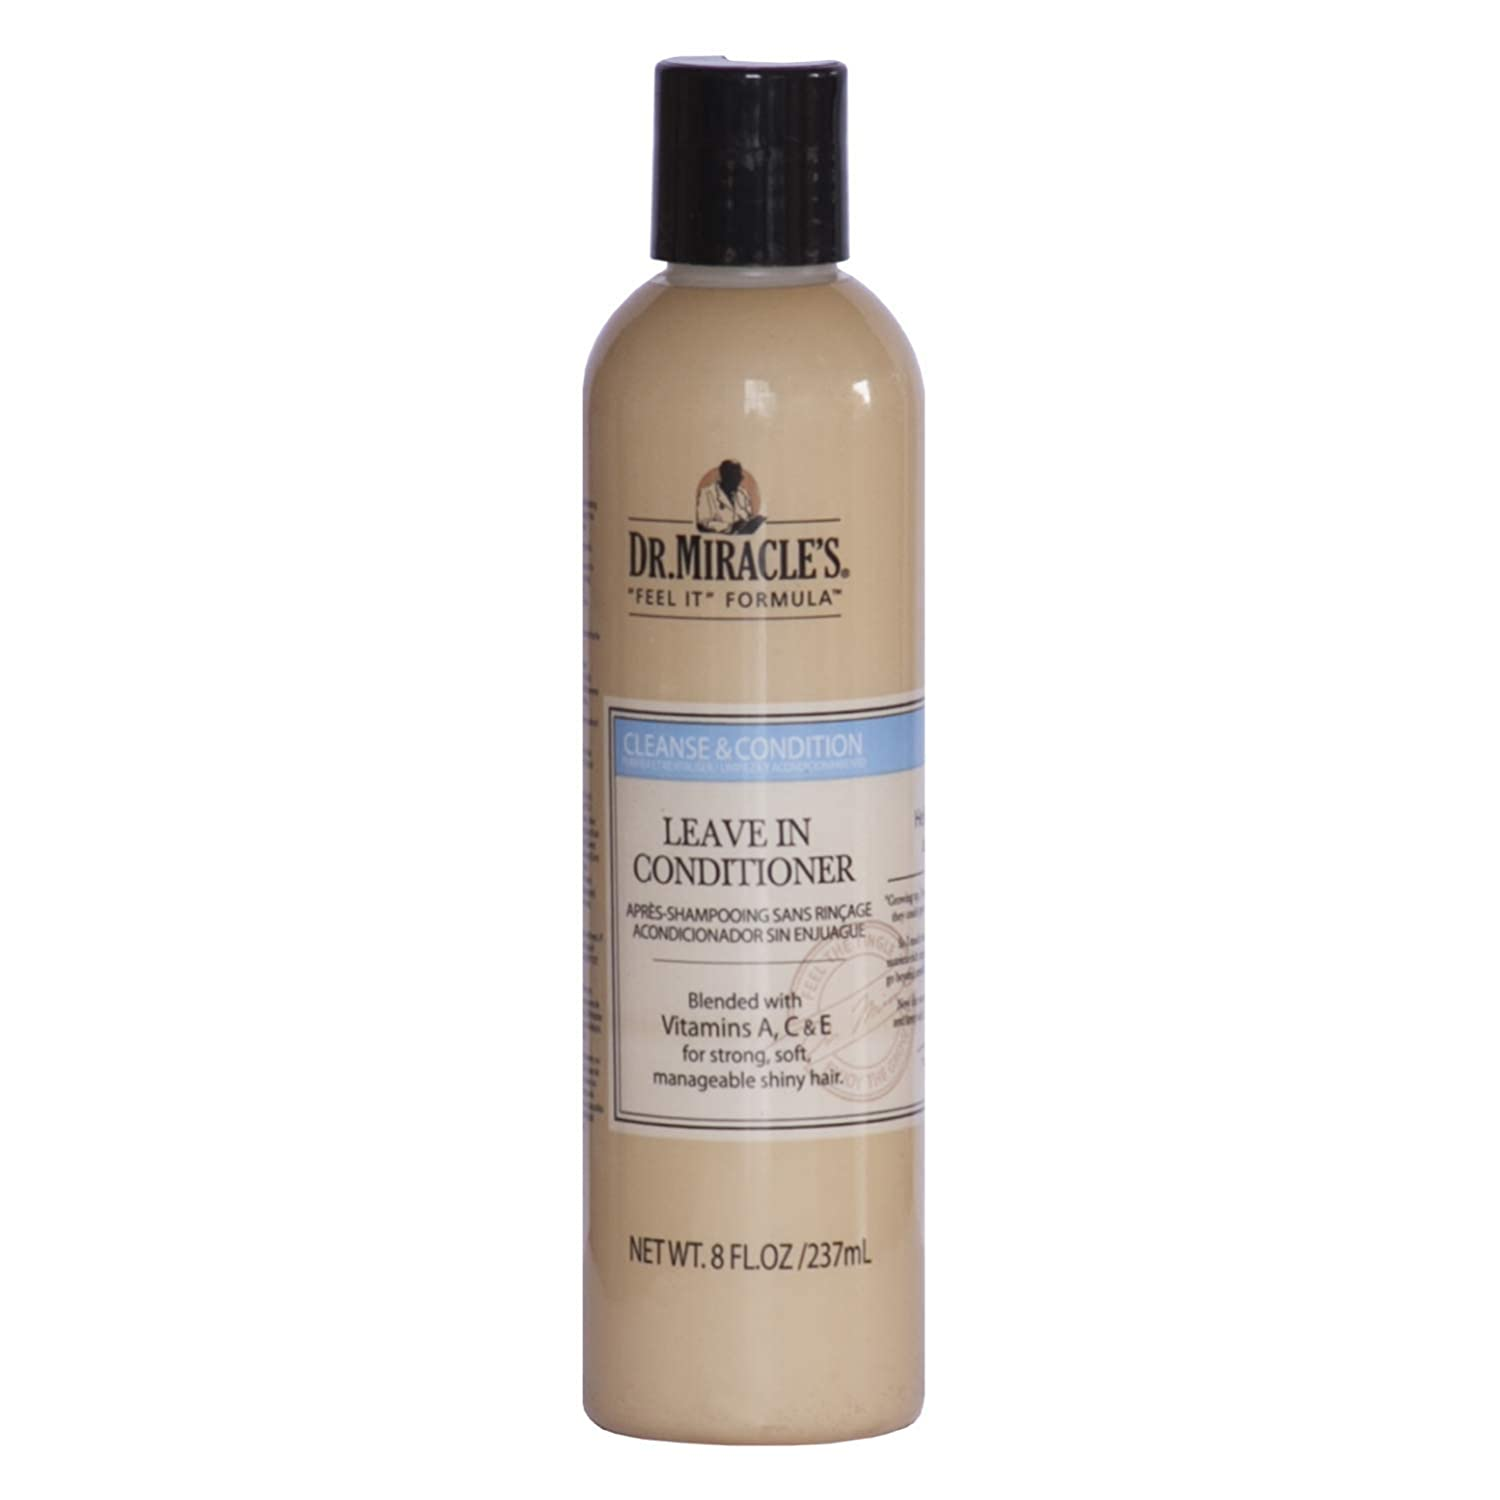 Dr. Miracle's Leave Max 44% OFF In Conditioner Vitamins C A Blended Ranking TOP3 with